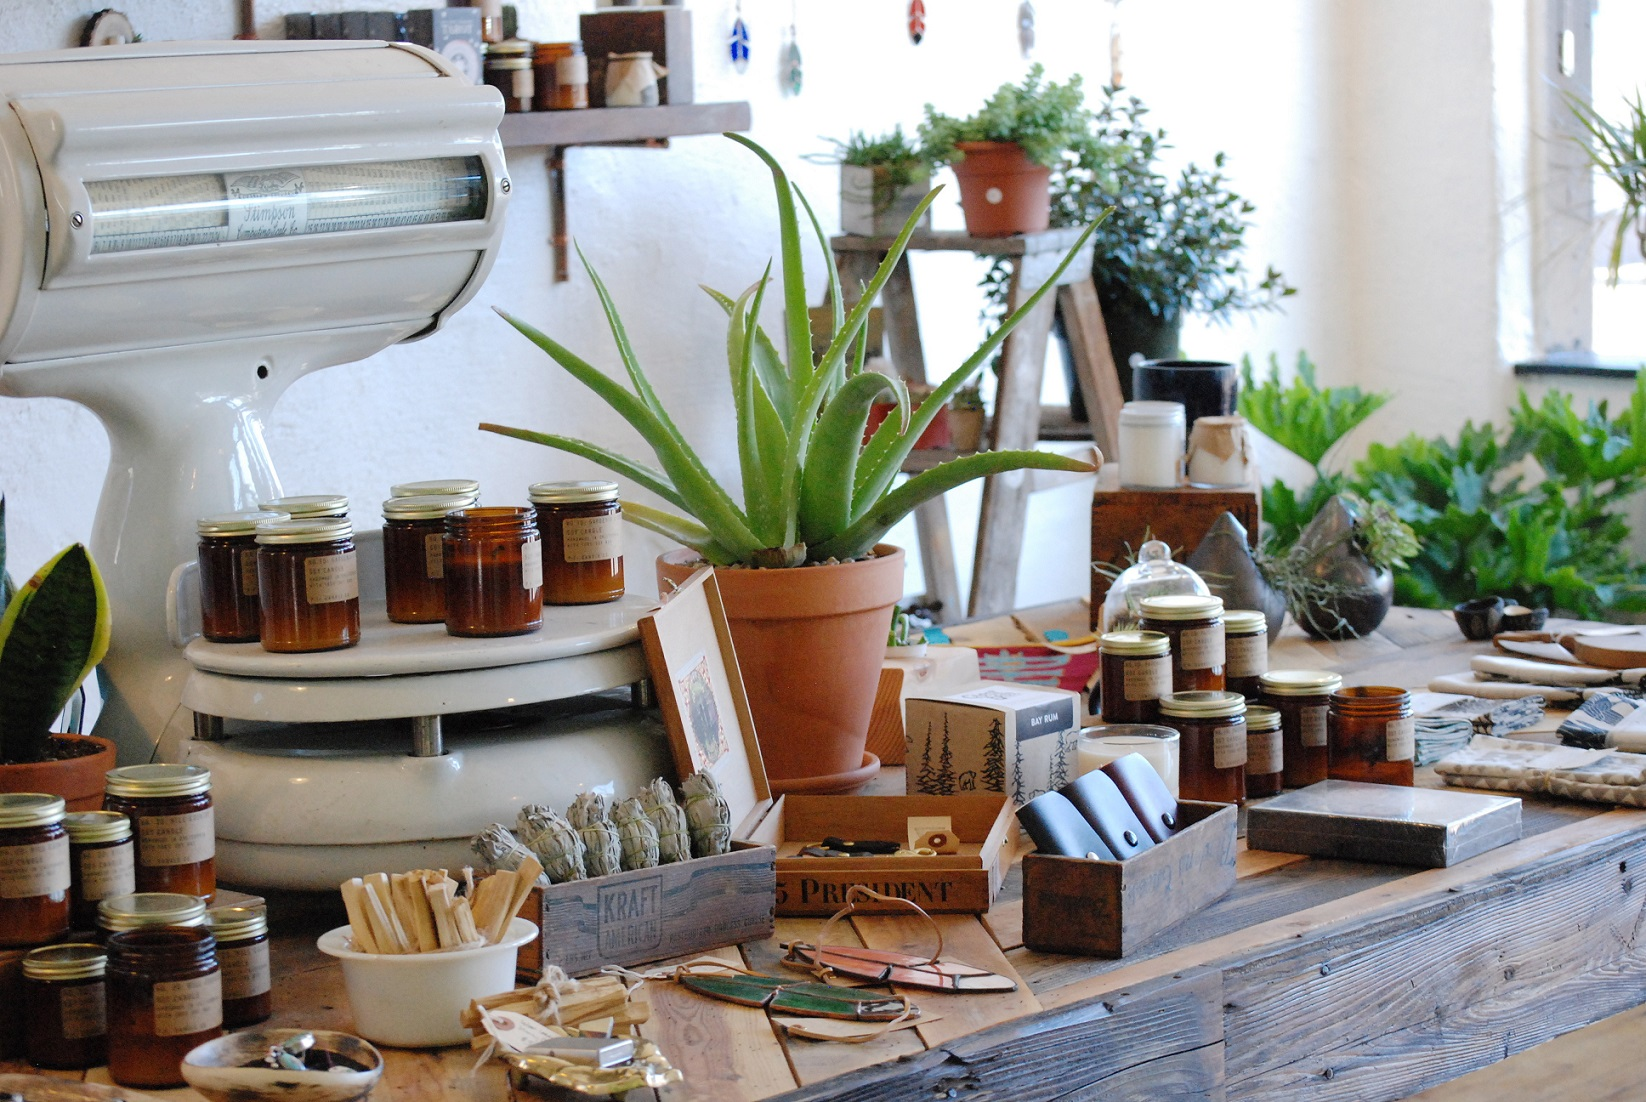 Denver Sustainable City Guide - Sub Rosa Mercantile